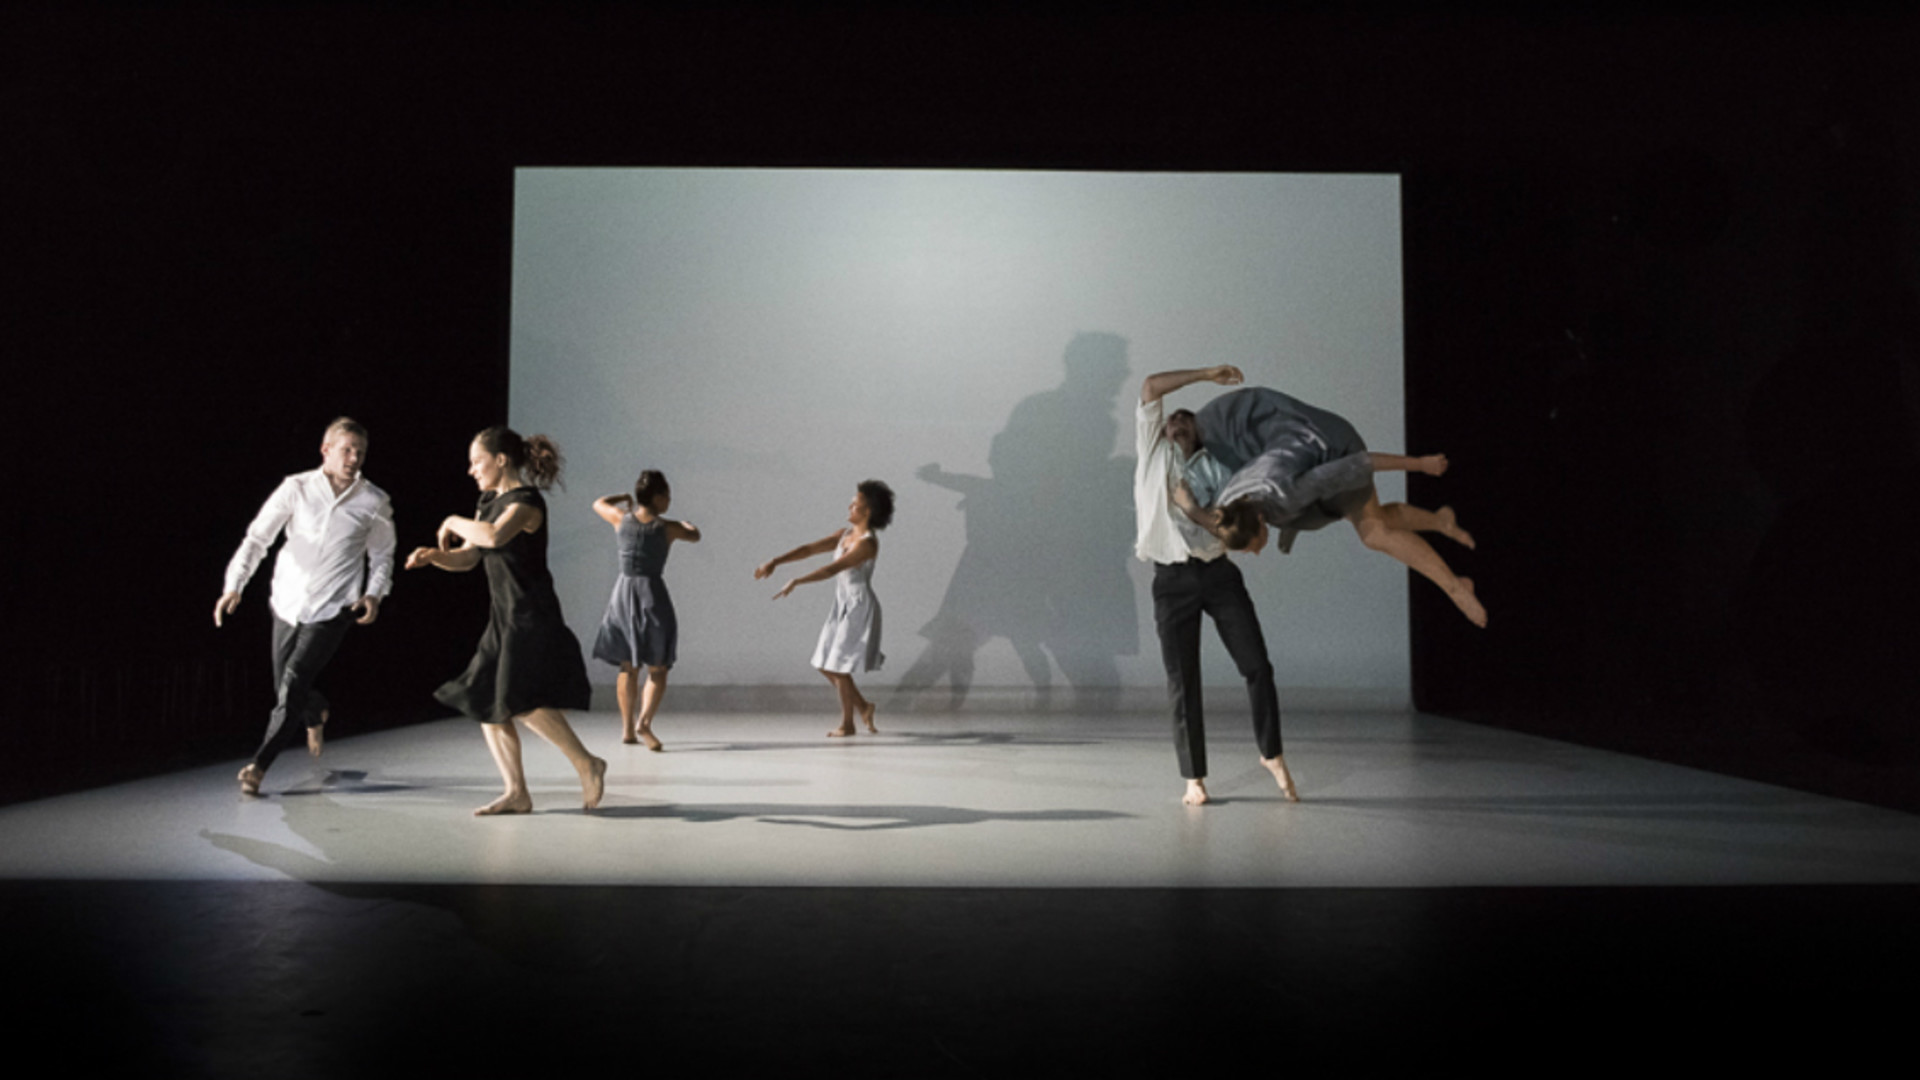 Dancers are scatterd around the stage with one lifting another in the air.